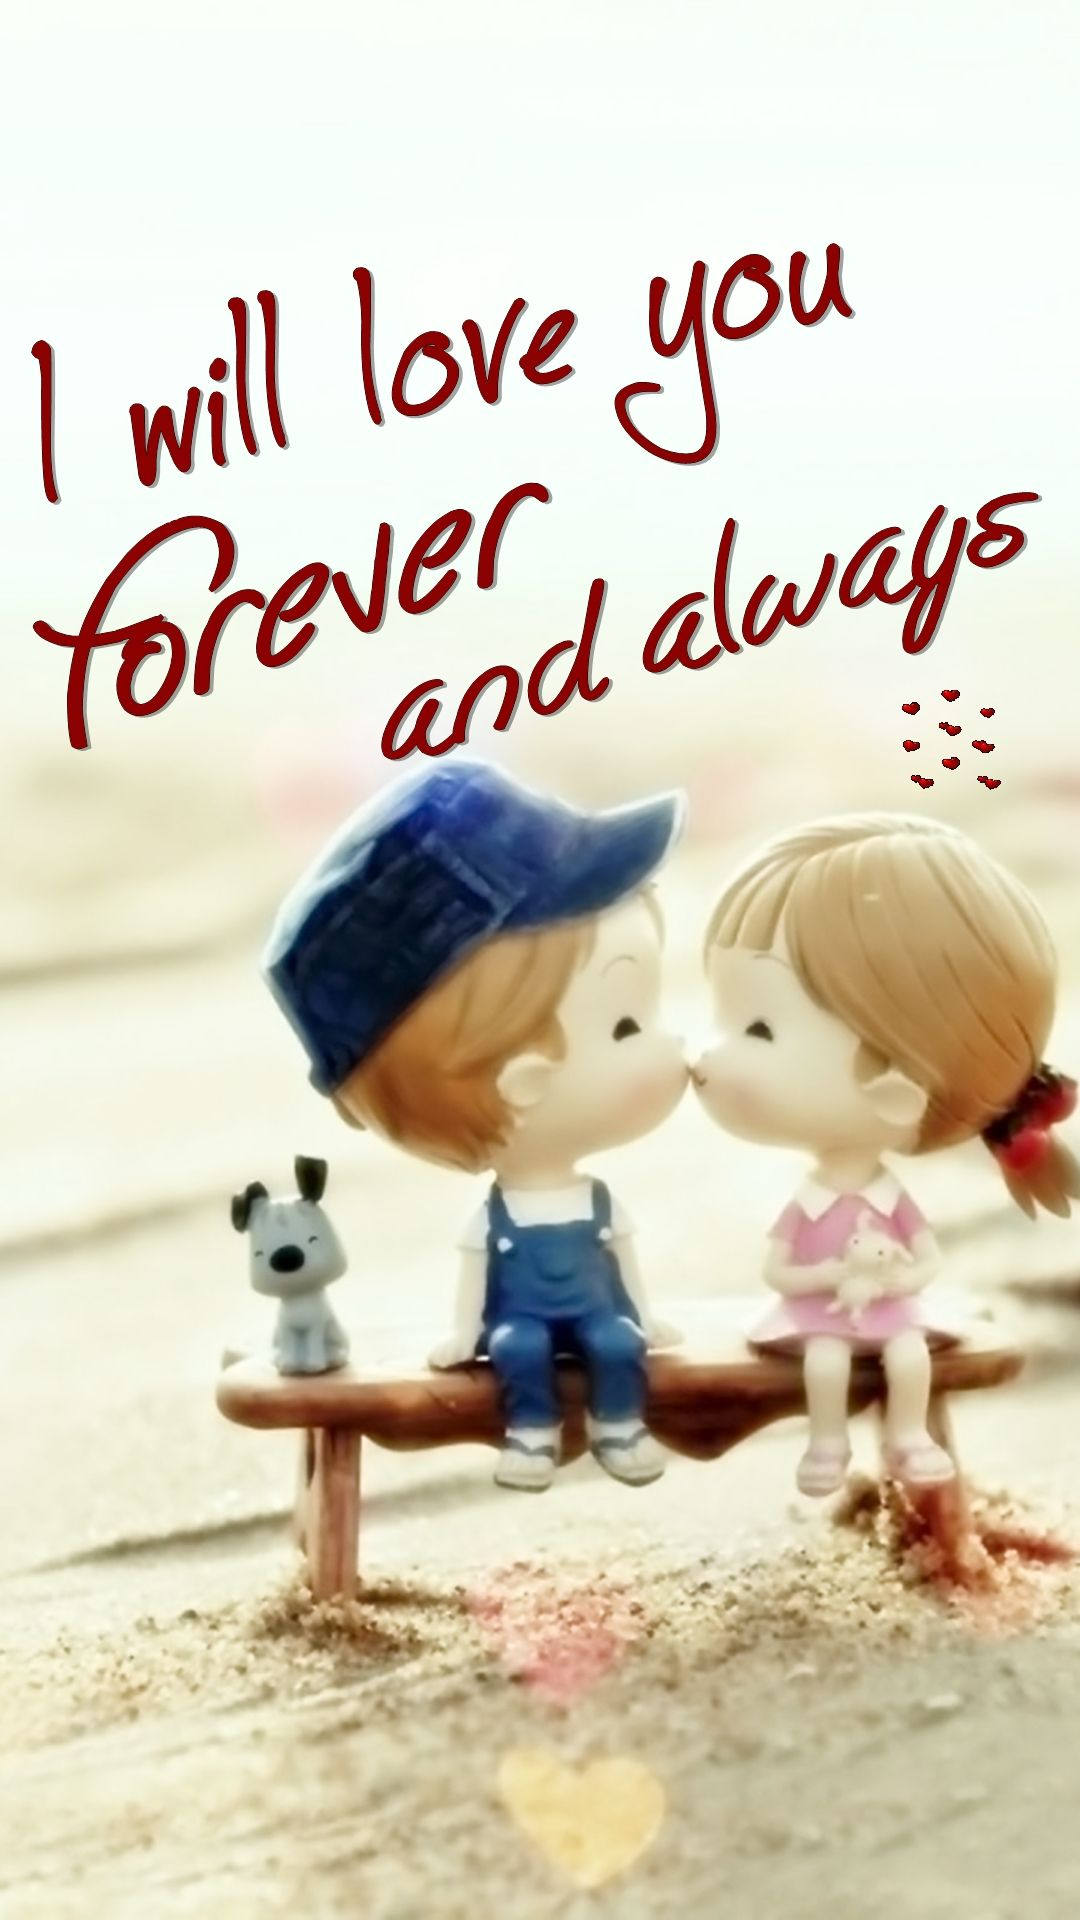 Tap image for more love wallpapers! Love you forever ...